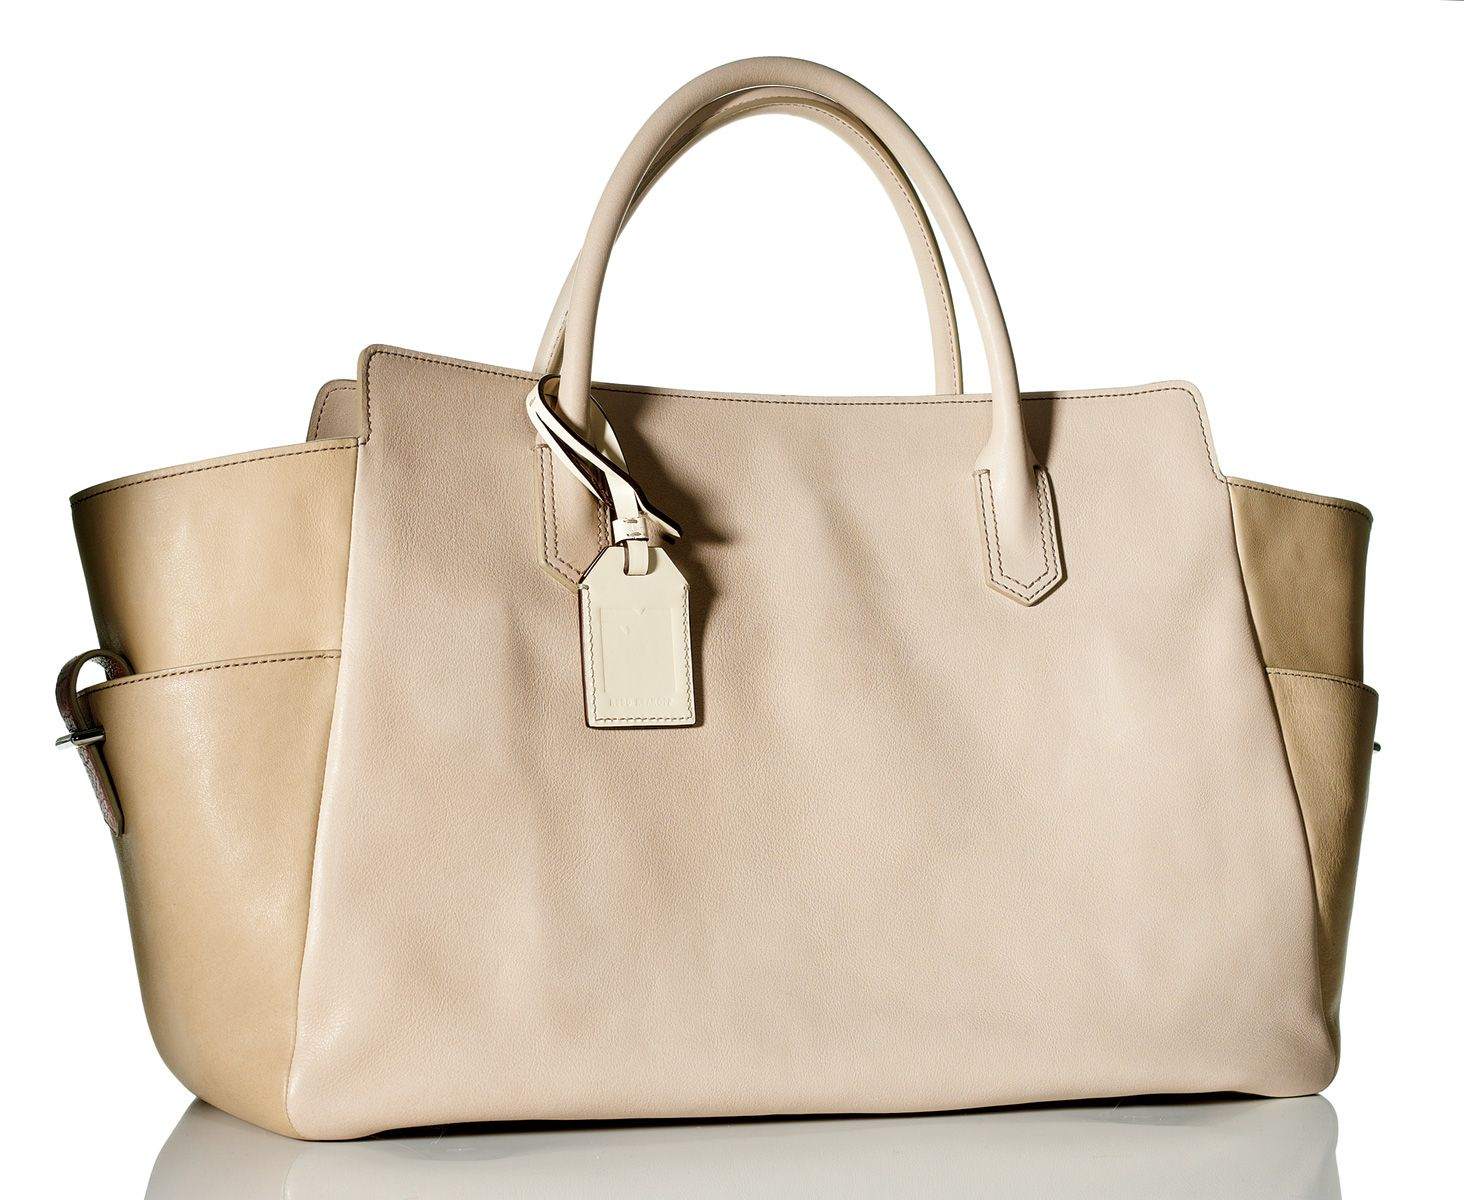 """""""I'm drawn to the unadorned simplicity of this Reed Krakoff bag. It's functional, ideal for flying, and classically chic."""" Bag; (877) 733-3525. - Photo: Liam Goodman"""